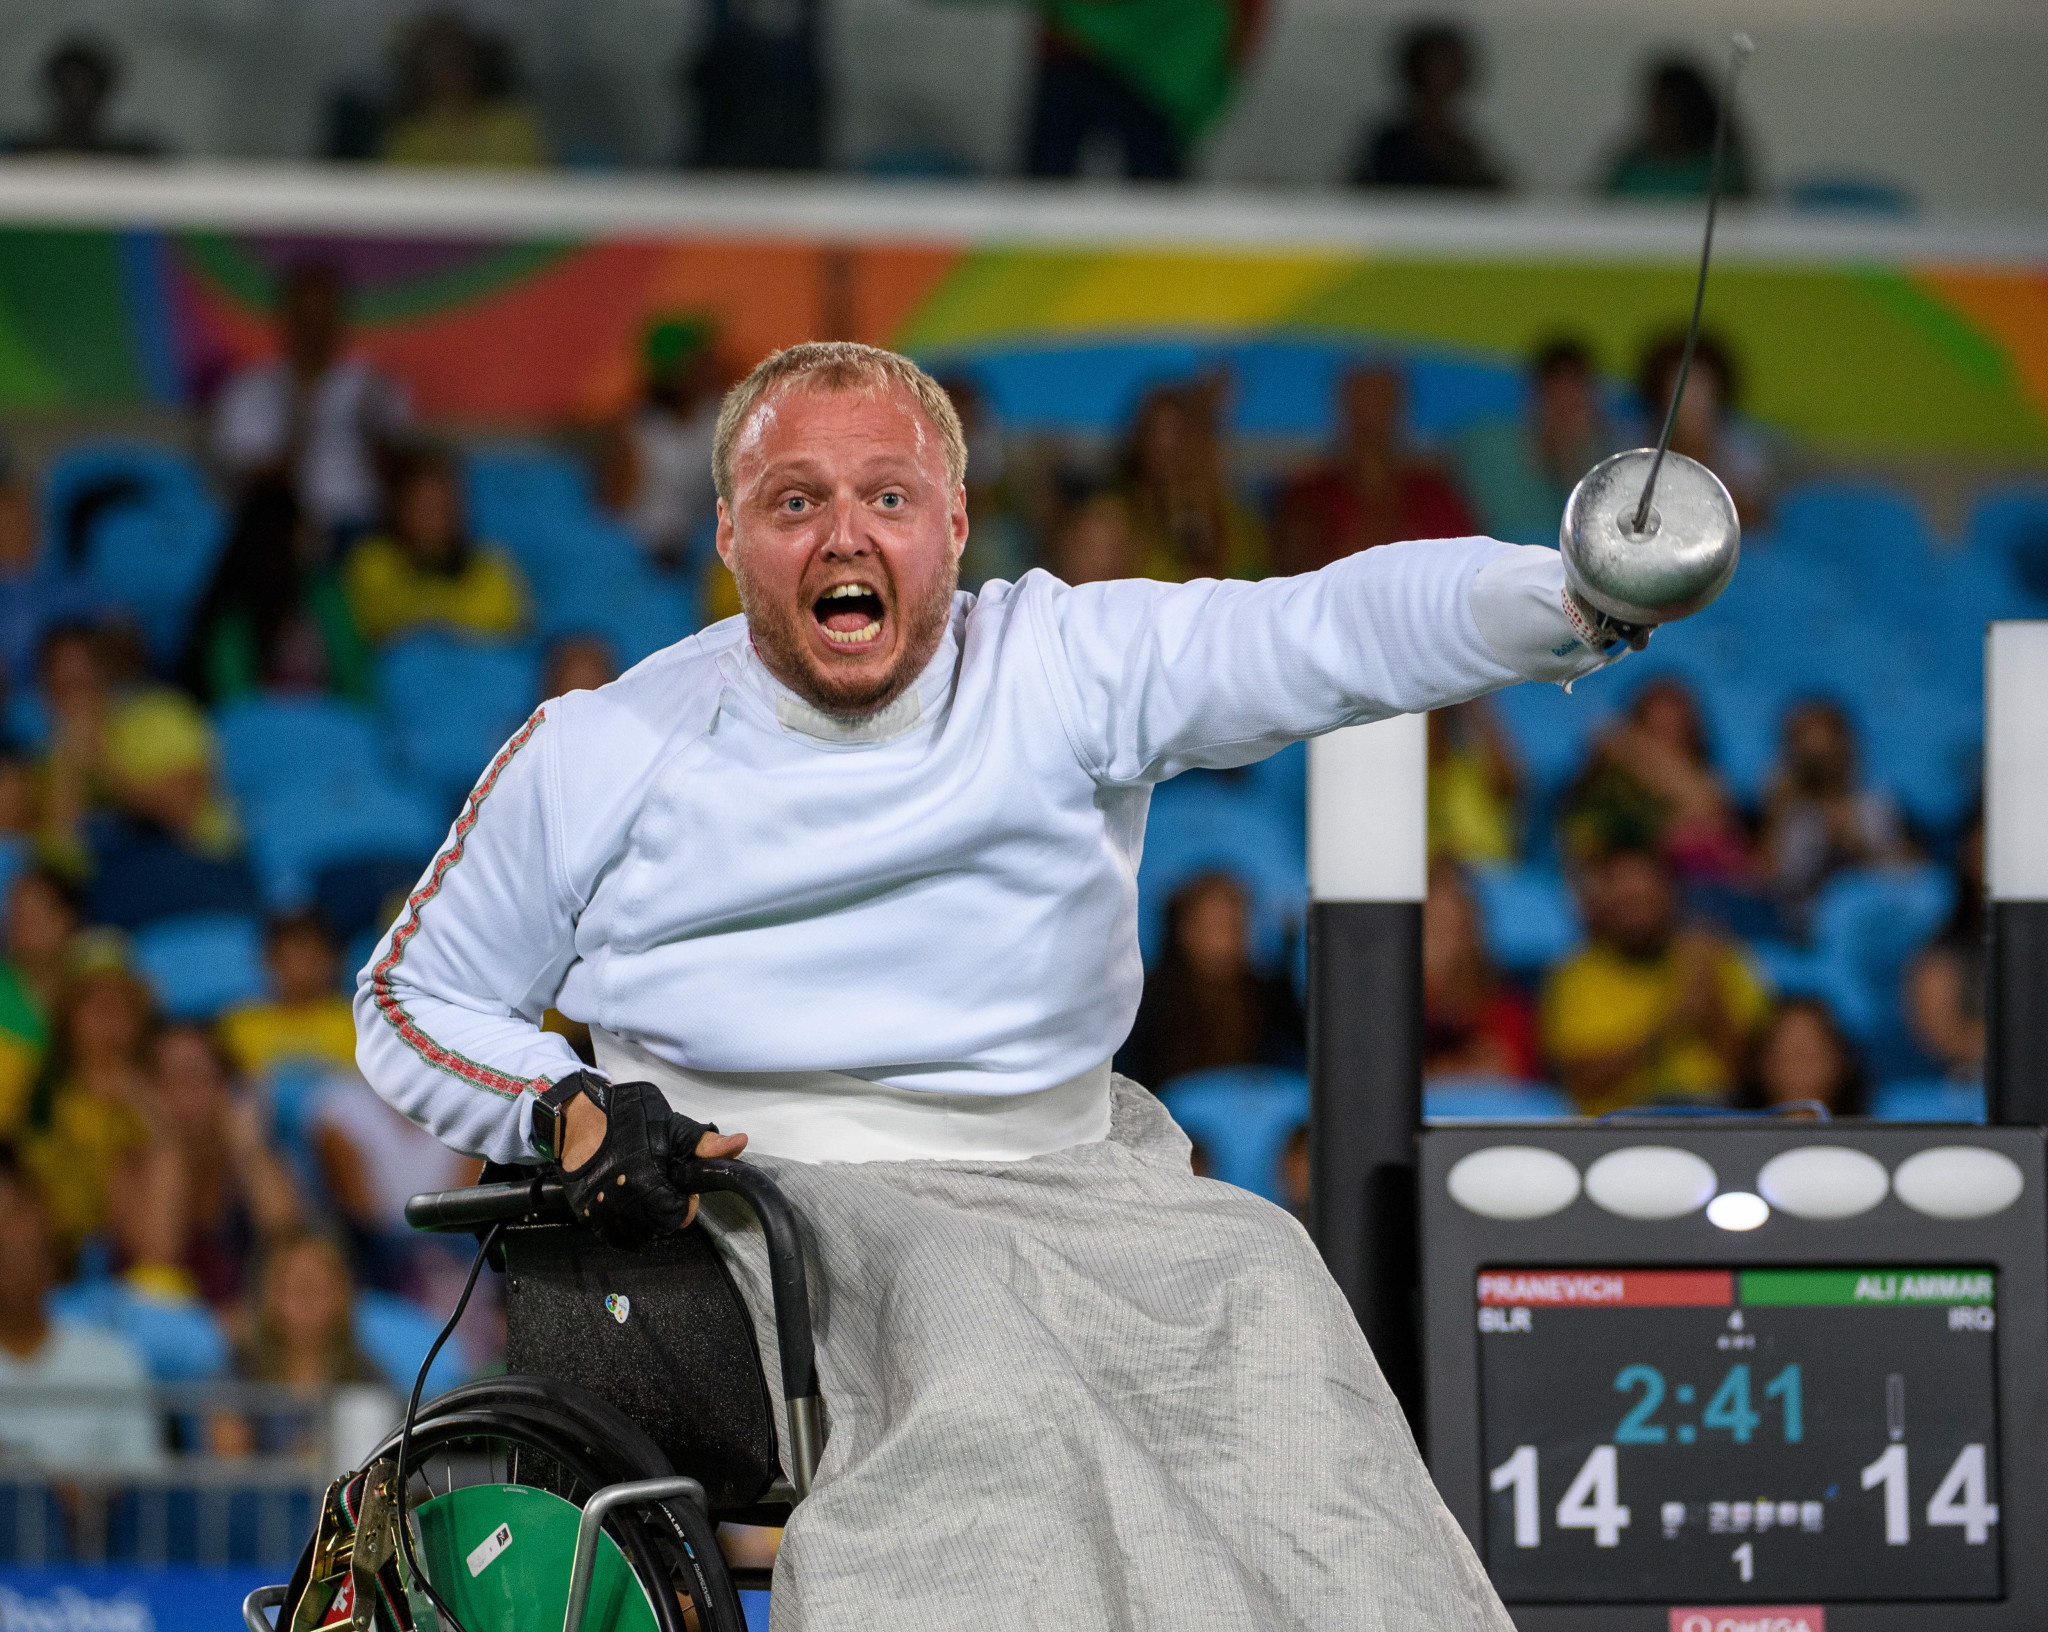 Belarus' Paralympic team given official send-off prior to Tokyo 2020